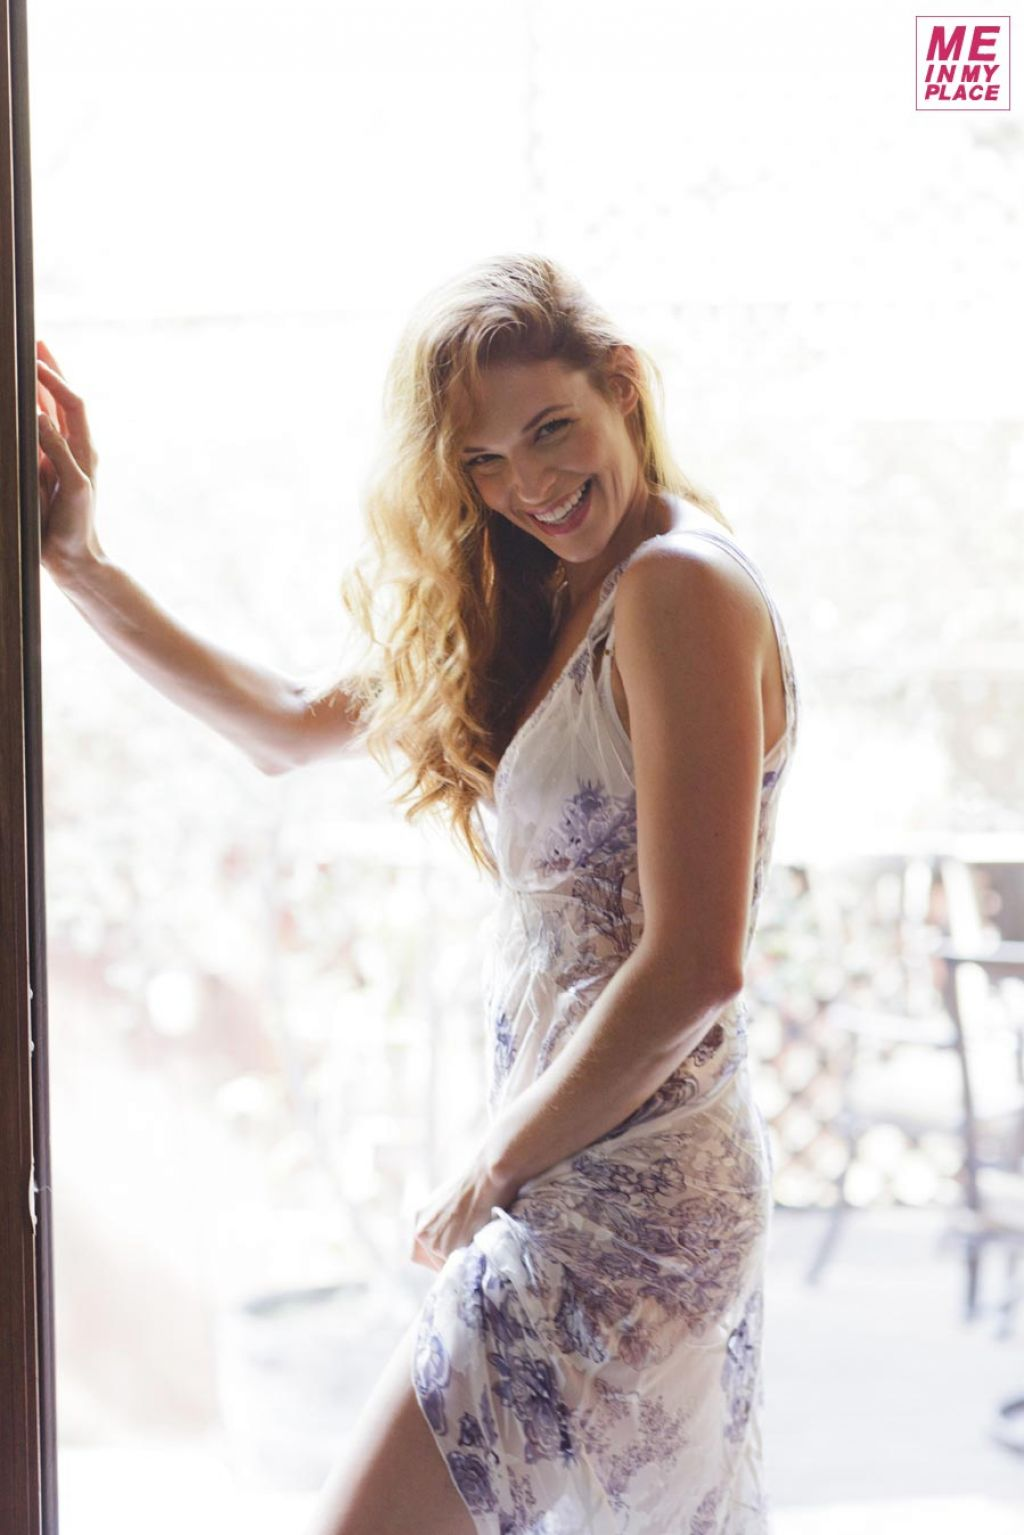 http://celebmafia.com/wp-content/uploads/2014/01/amanda-righetti-me-in-my-place-photoshoot-2013-_3.jpg